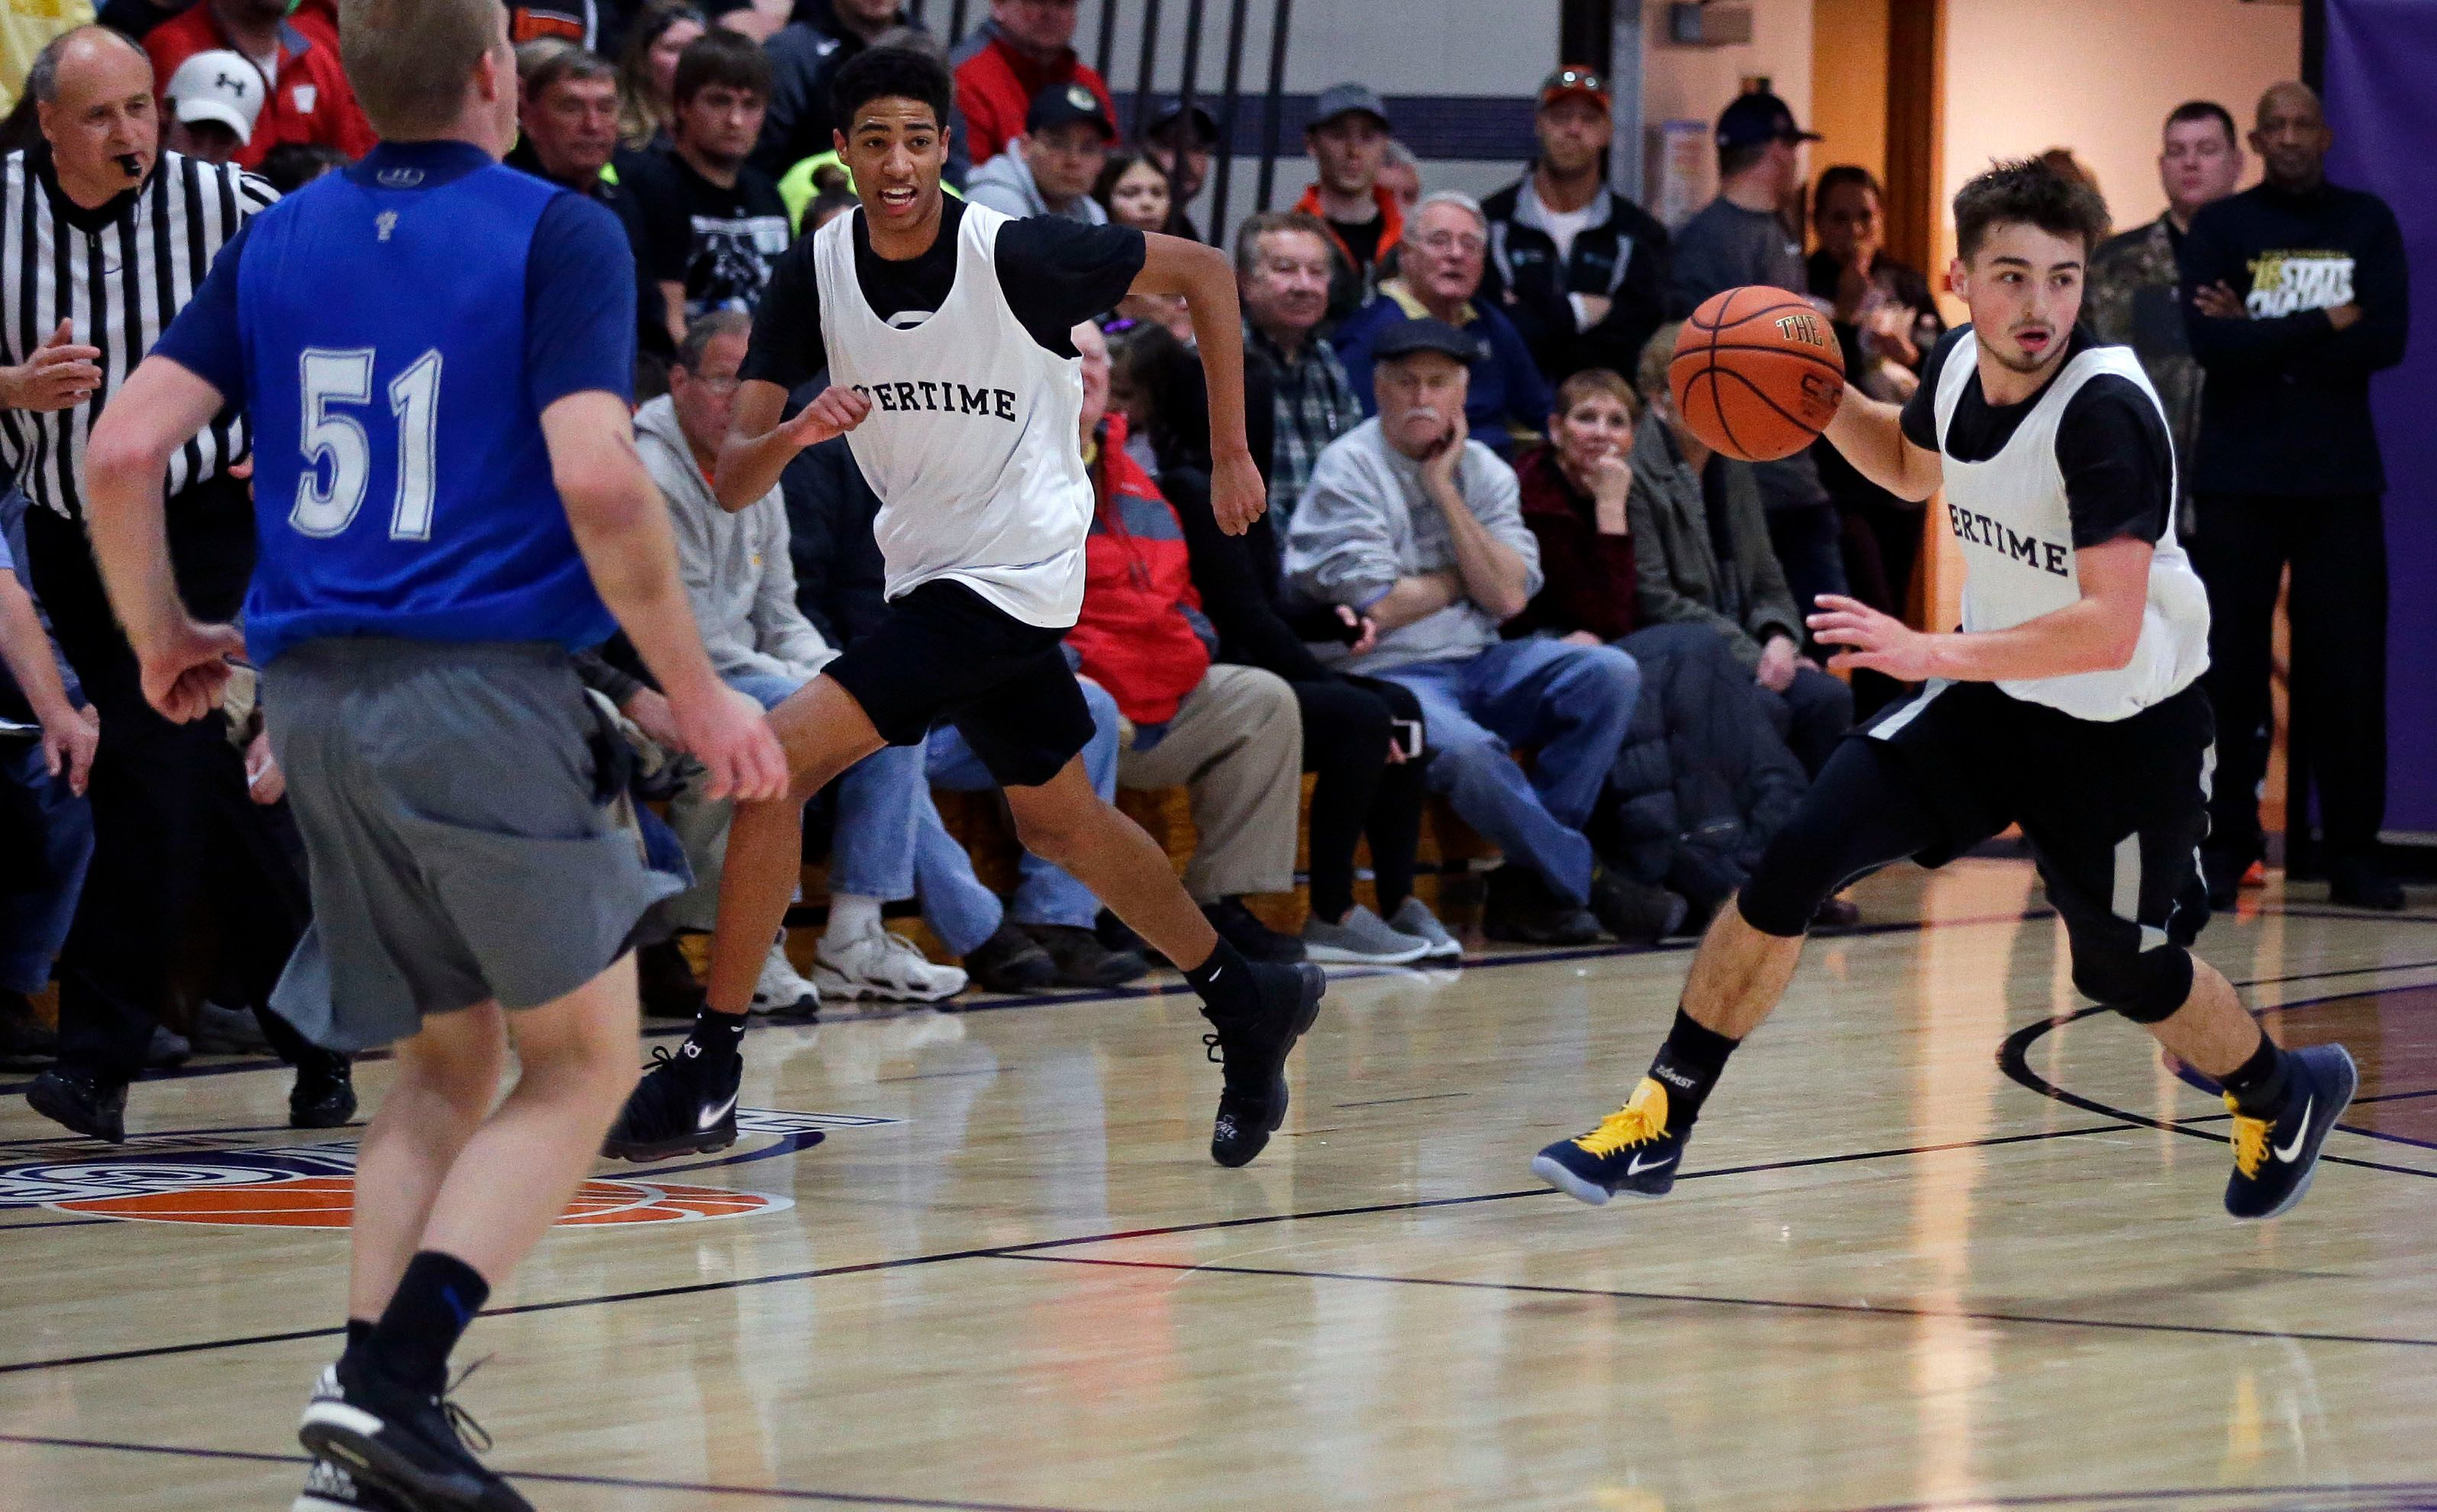 Jordan McCabe, right, of Kaukauna and Tyrese Haliburton of Oshkosh North competed for Overtime Sports in the Holy Cross Men's Open basketball tournament in 2018.